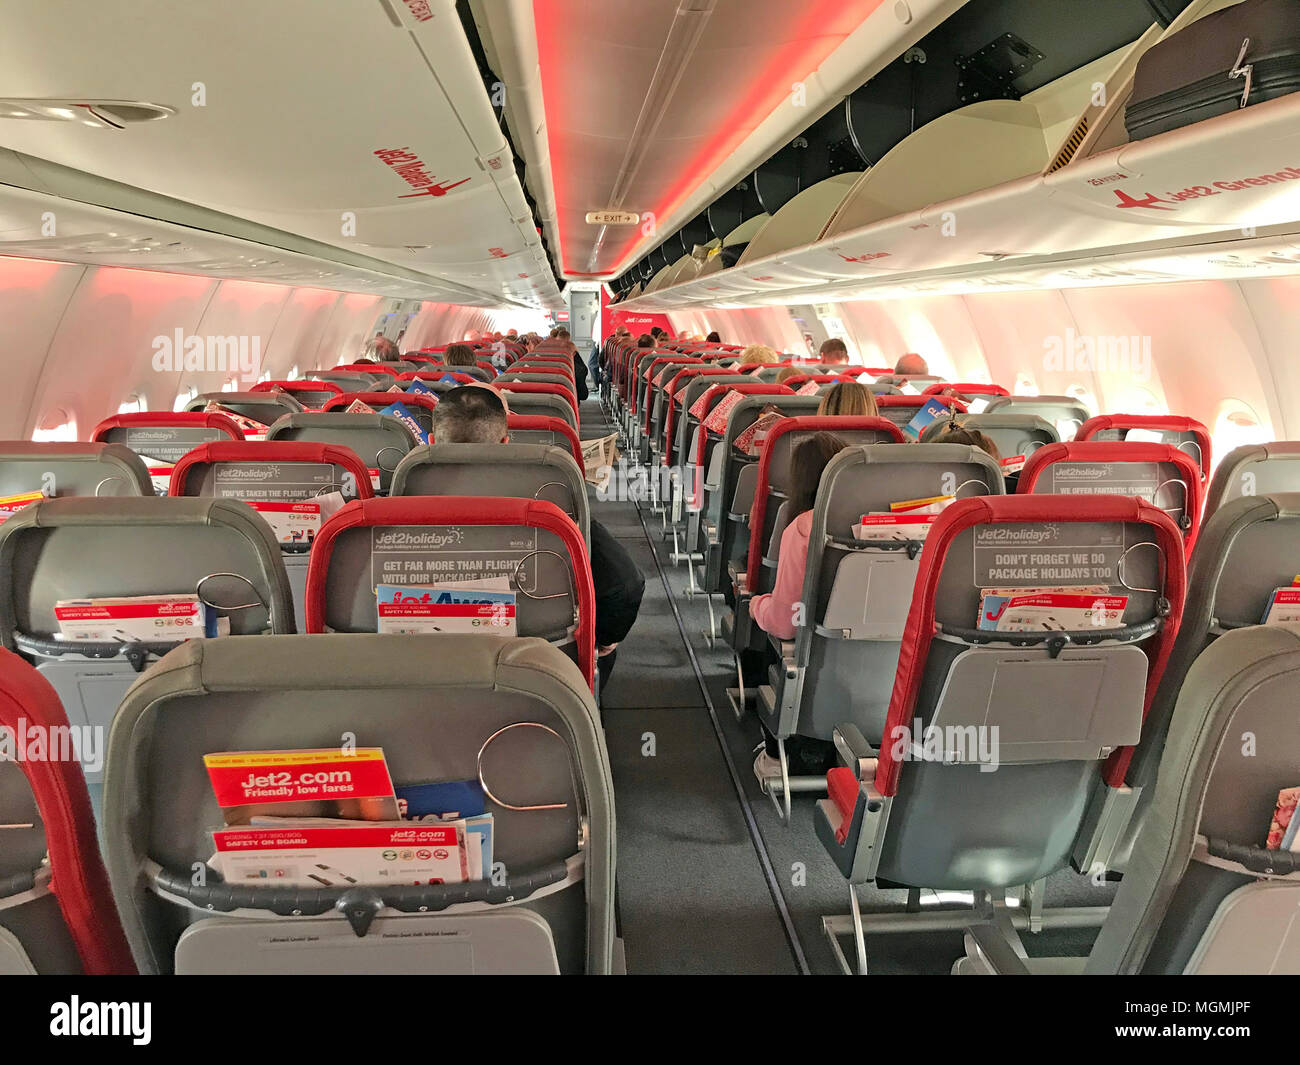 GoTonySmith,of,Jet2,Boeing737,Cabin,Boeing,passenger,charter,seat,luggage,stow,red,grey,with